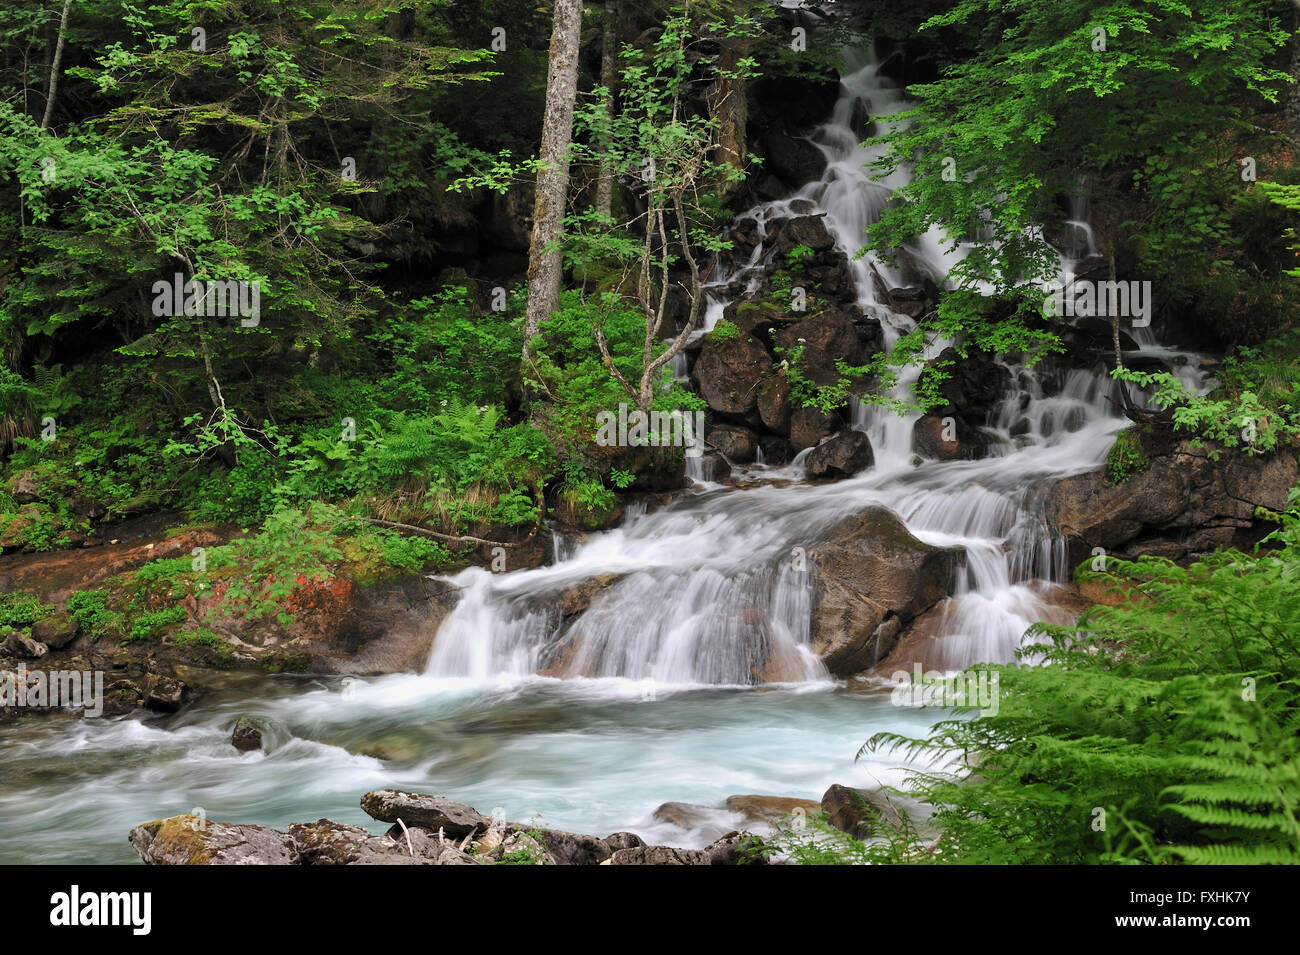 Waterfall near the Pont d'Espagne in the Hautes-Pyrénées near Cauterets, Pyrenees, France - Stock Image